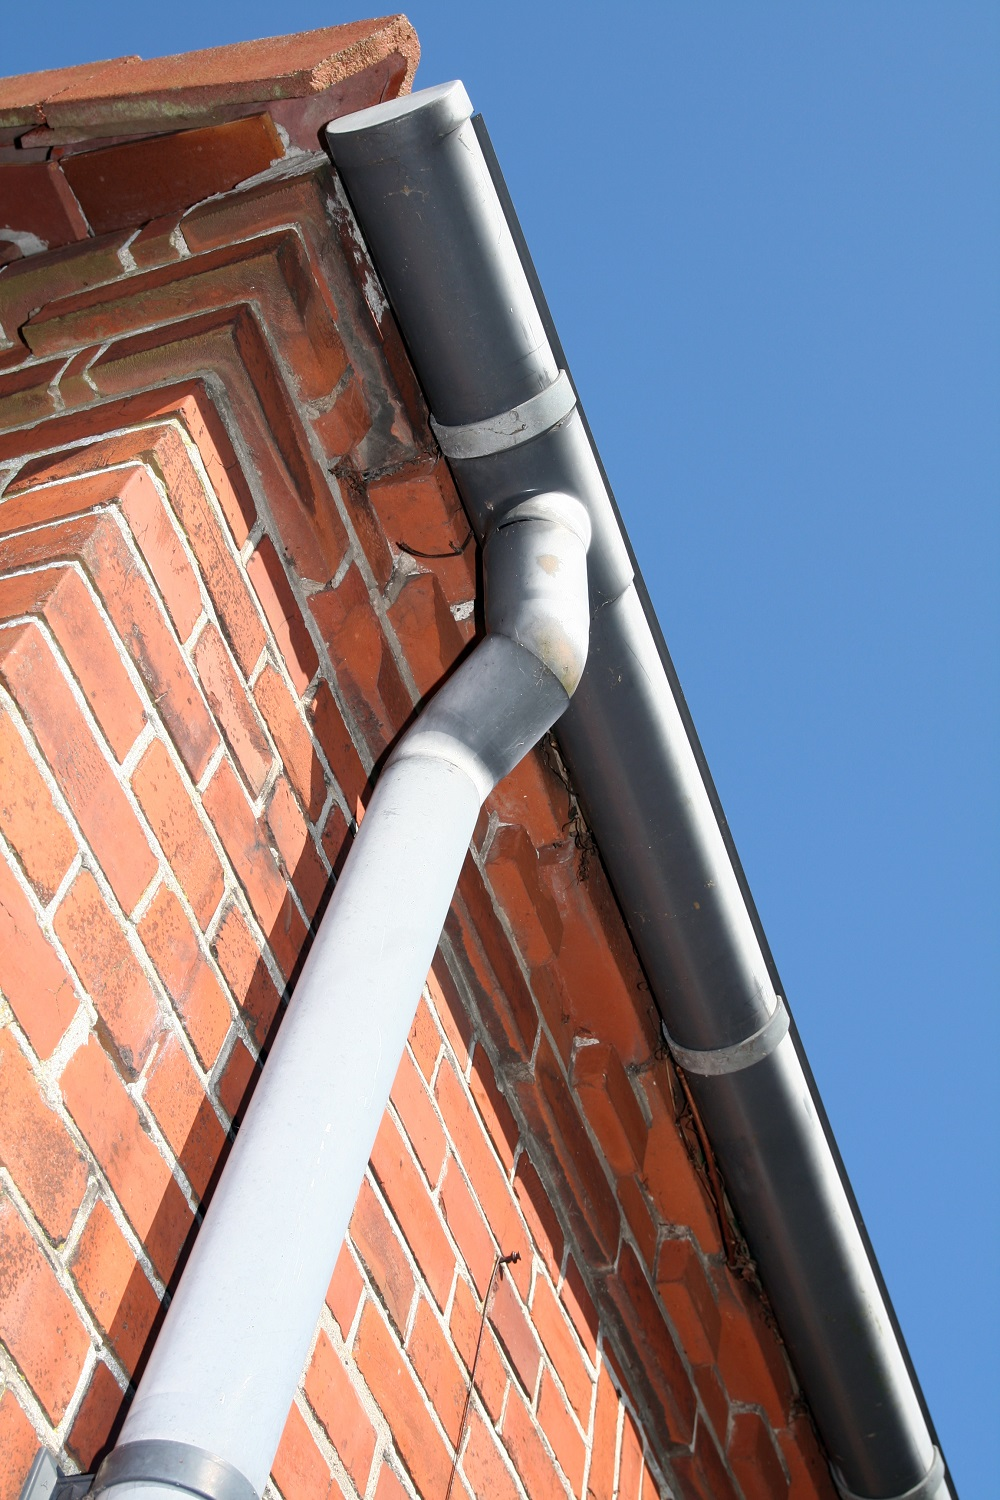 guttering repair in Faringdon and Swindon